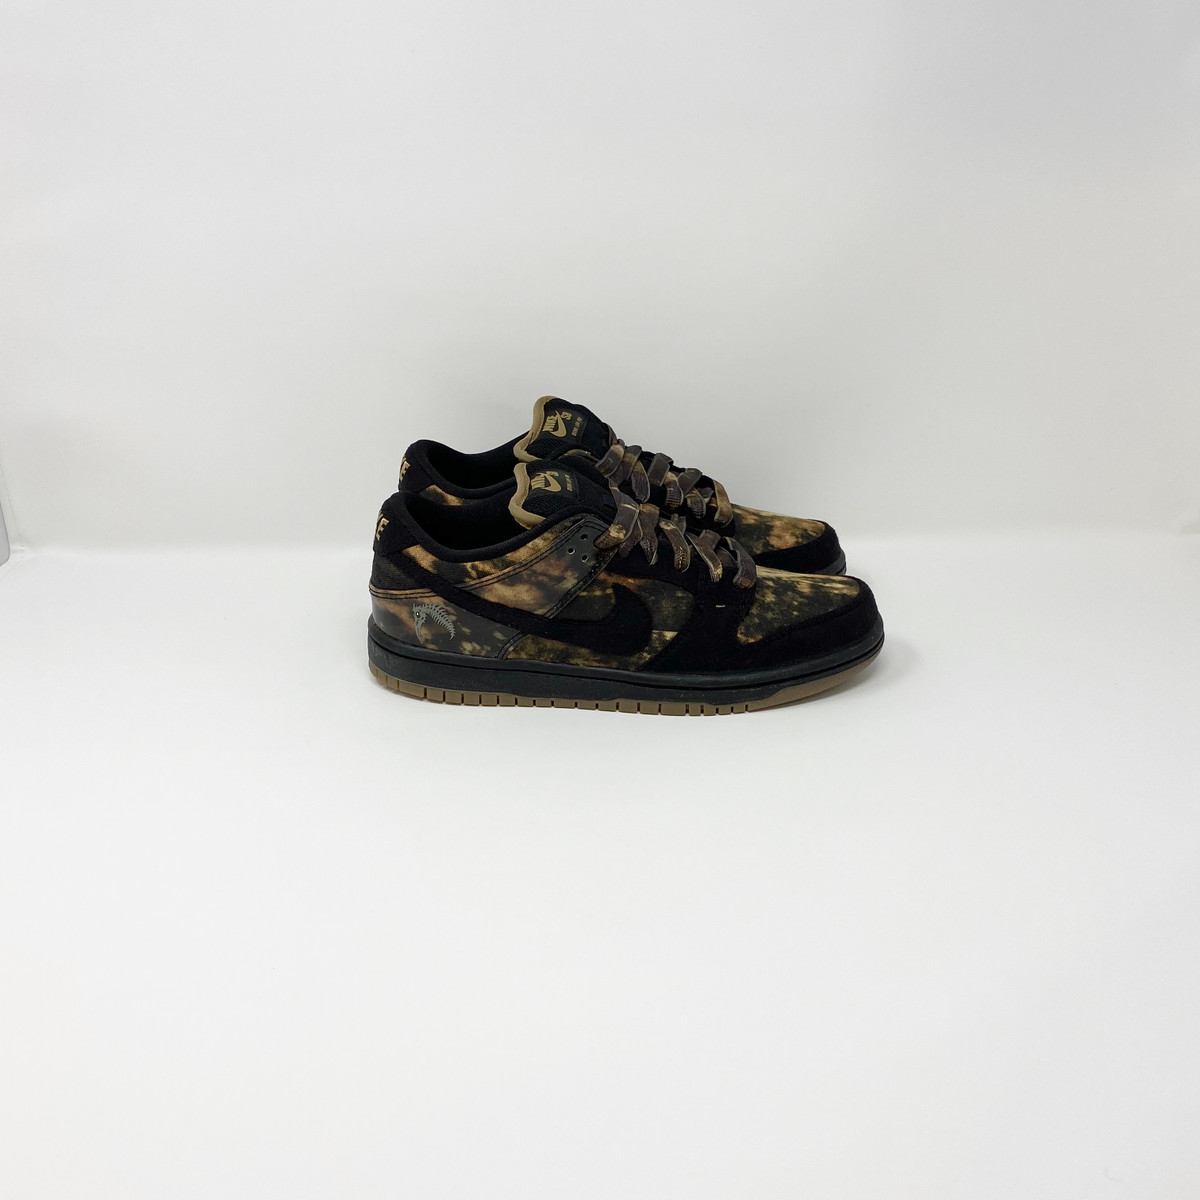 Nike Dunk SB Low Pushead 2